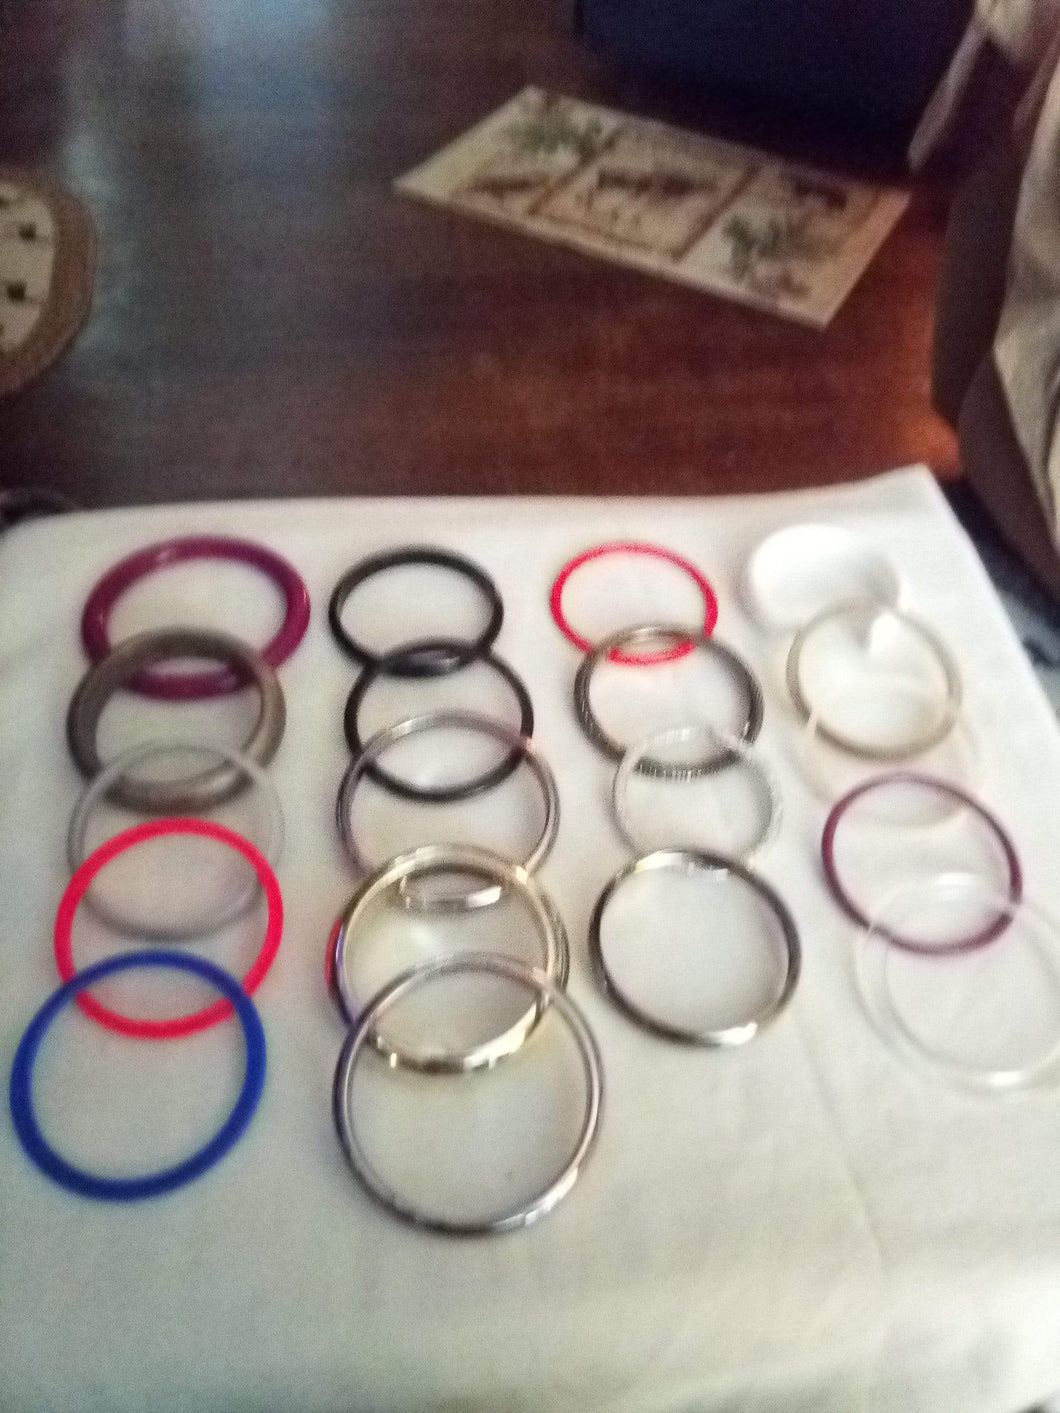 Lot of various style bracelets - B&P'sringsnthings